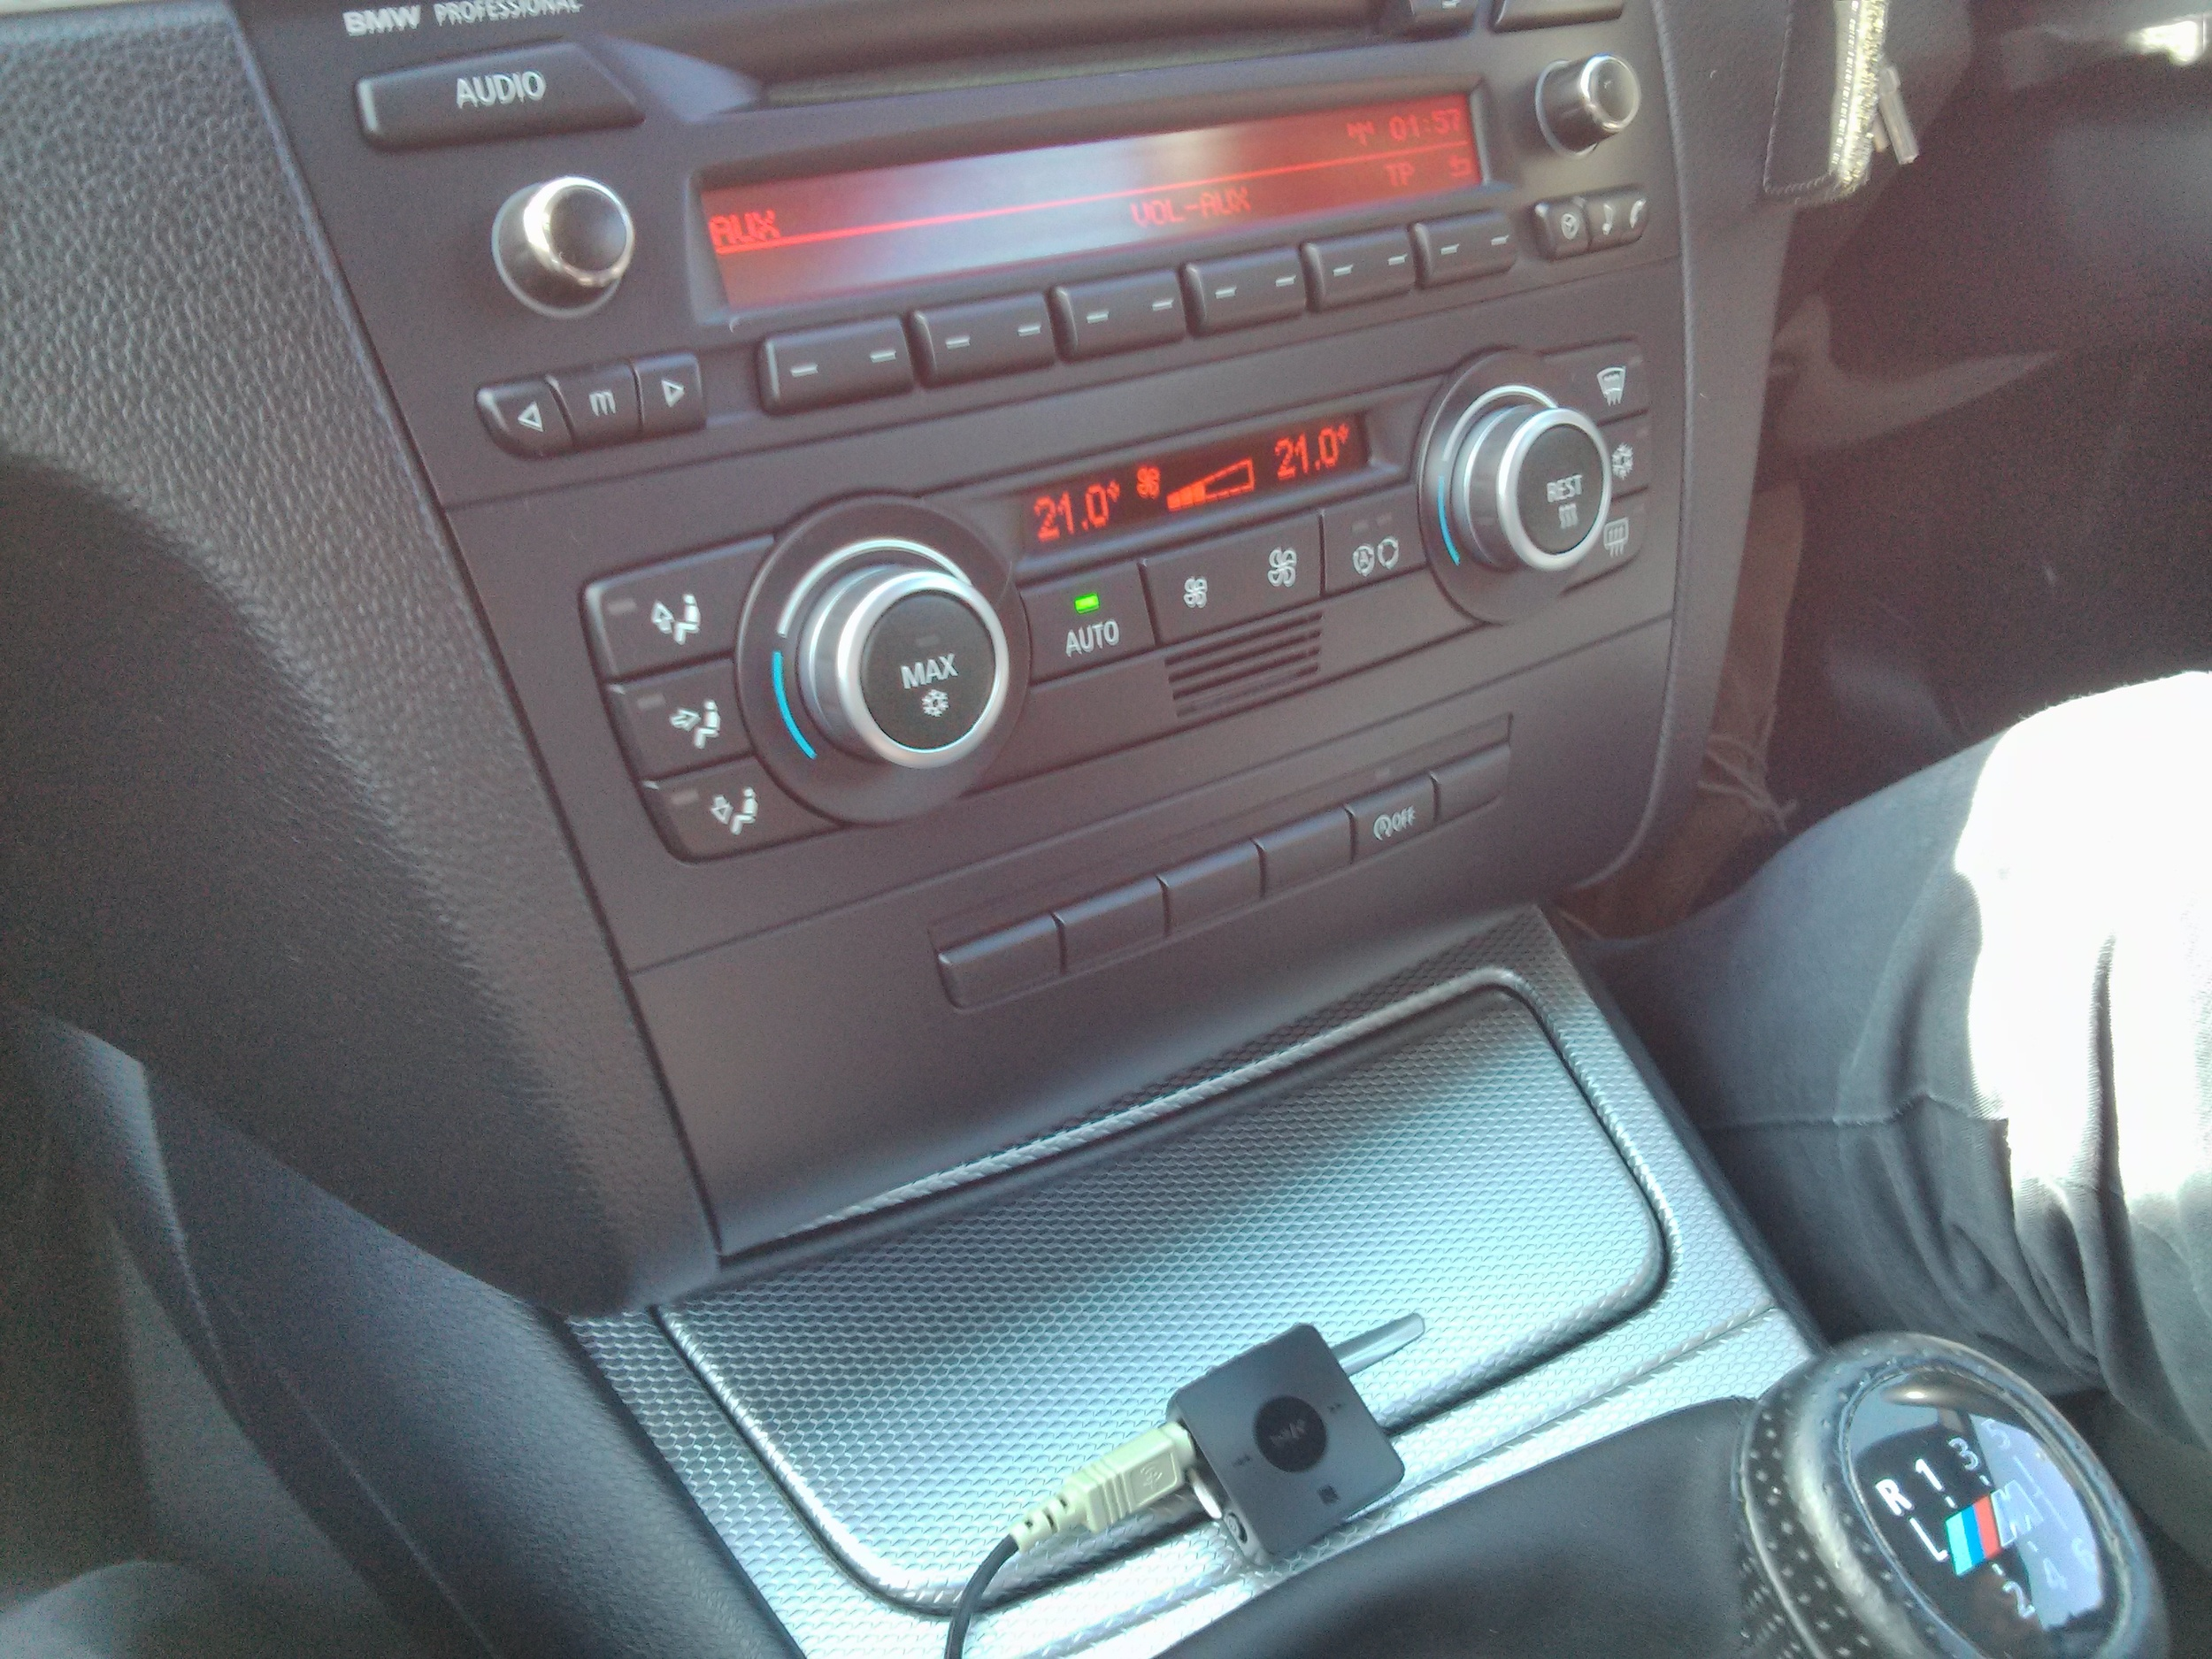 Careful mounting could see this BMW stereo go wireless very cheaply